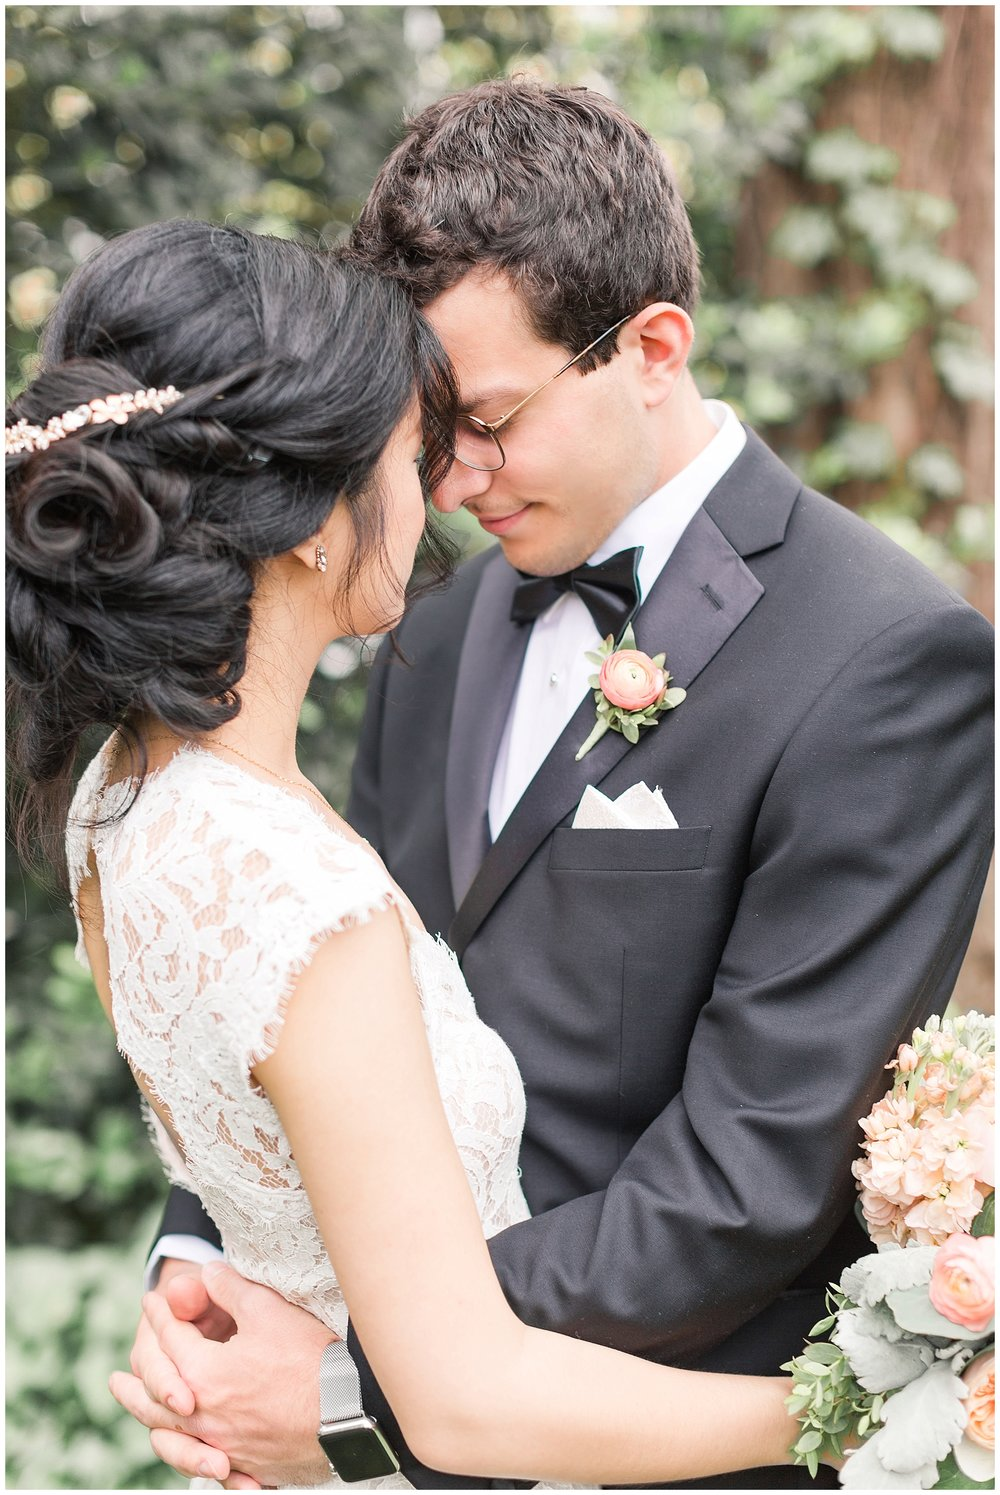 Leesburg-Wedding-Photos_Thomas-Birkby-House-Wedding_Jessica-Green-Photography-98.jpg